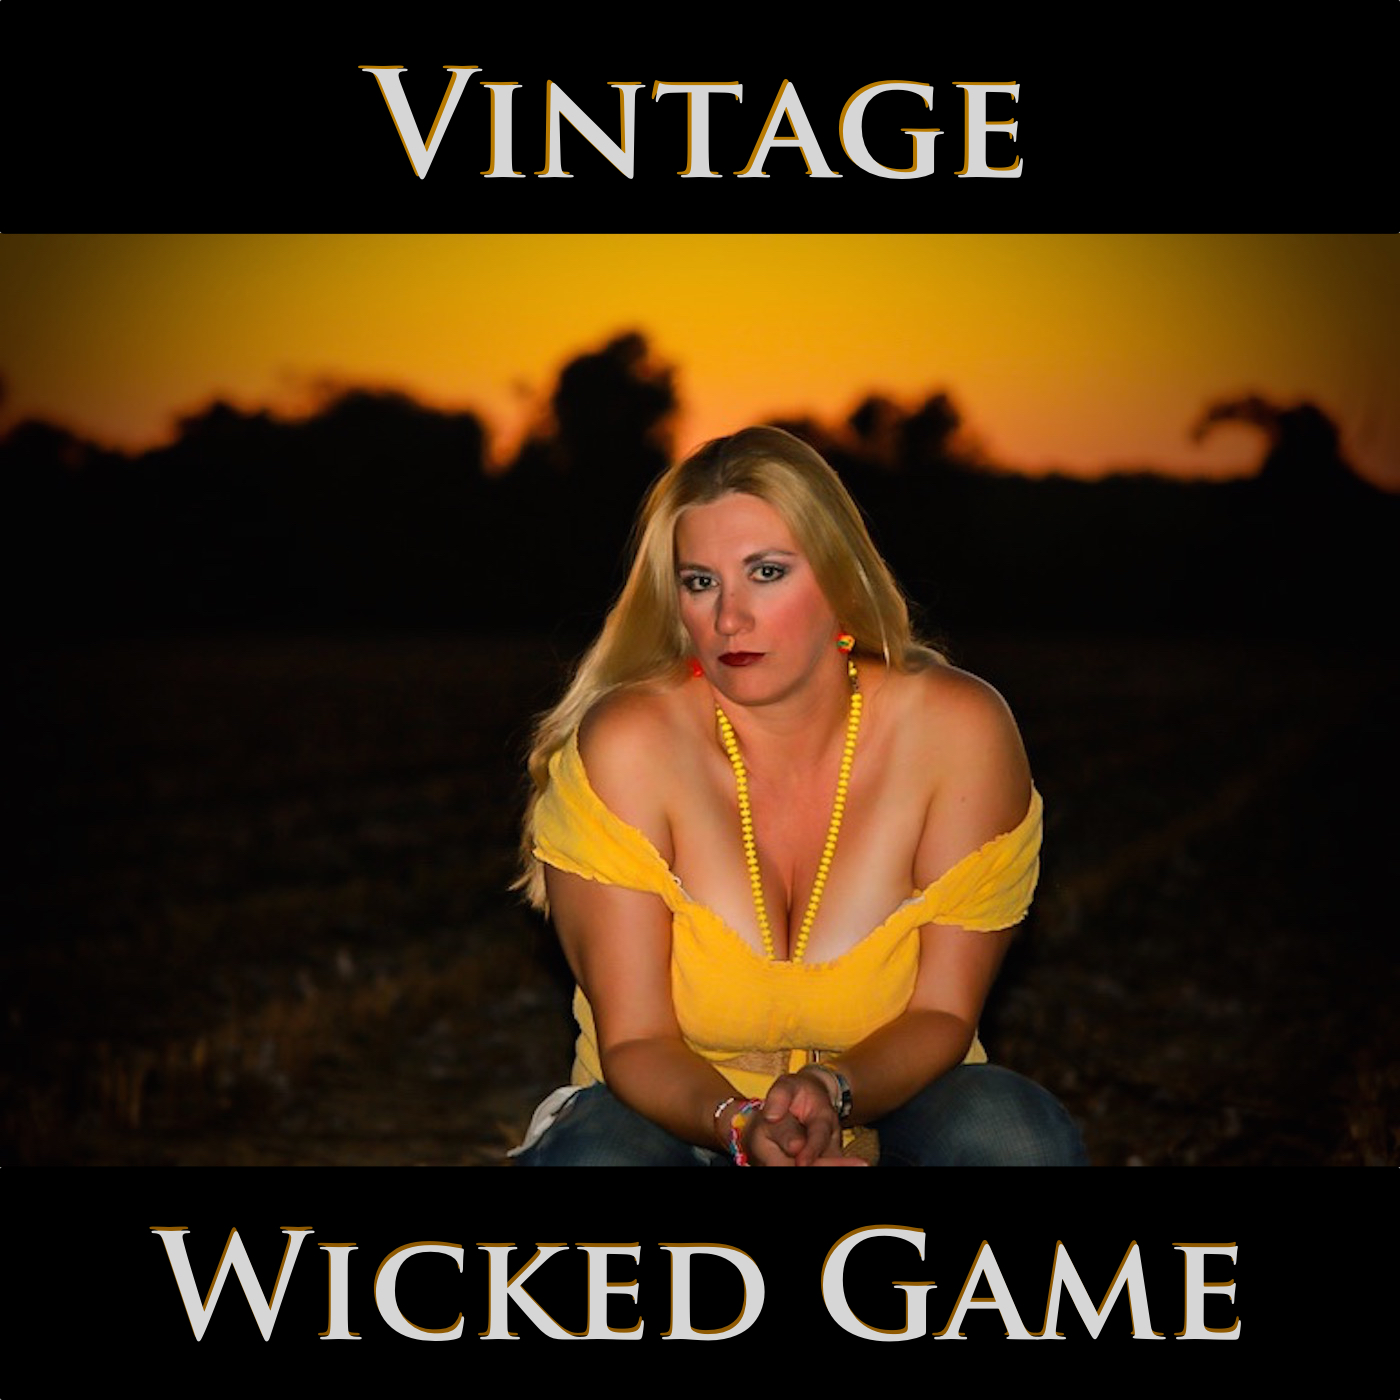 Vintage - Wicked Game